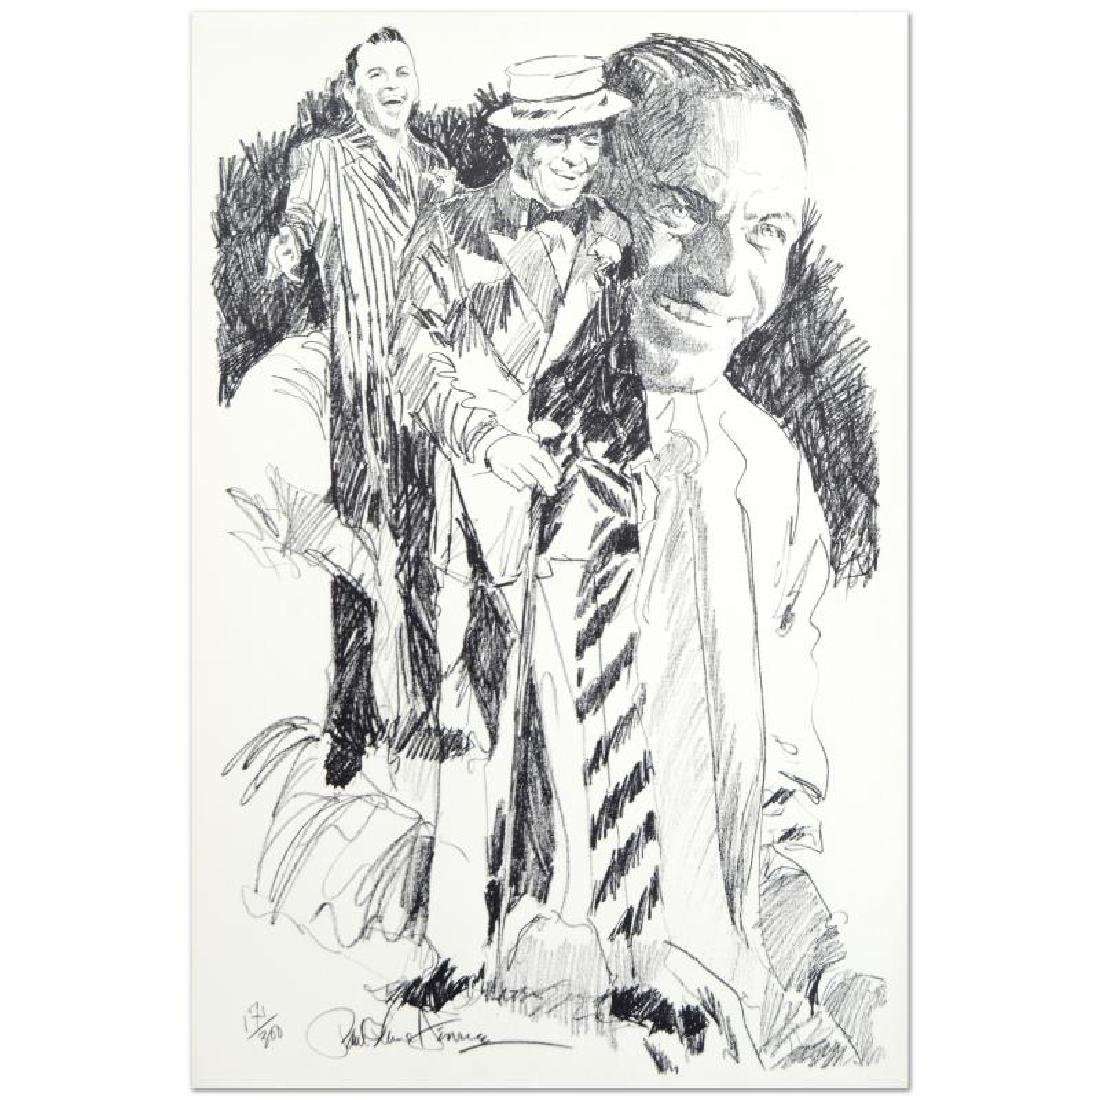 Sinatra Limited Edition Serigraph by Paul Blaine Henrie